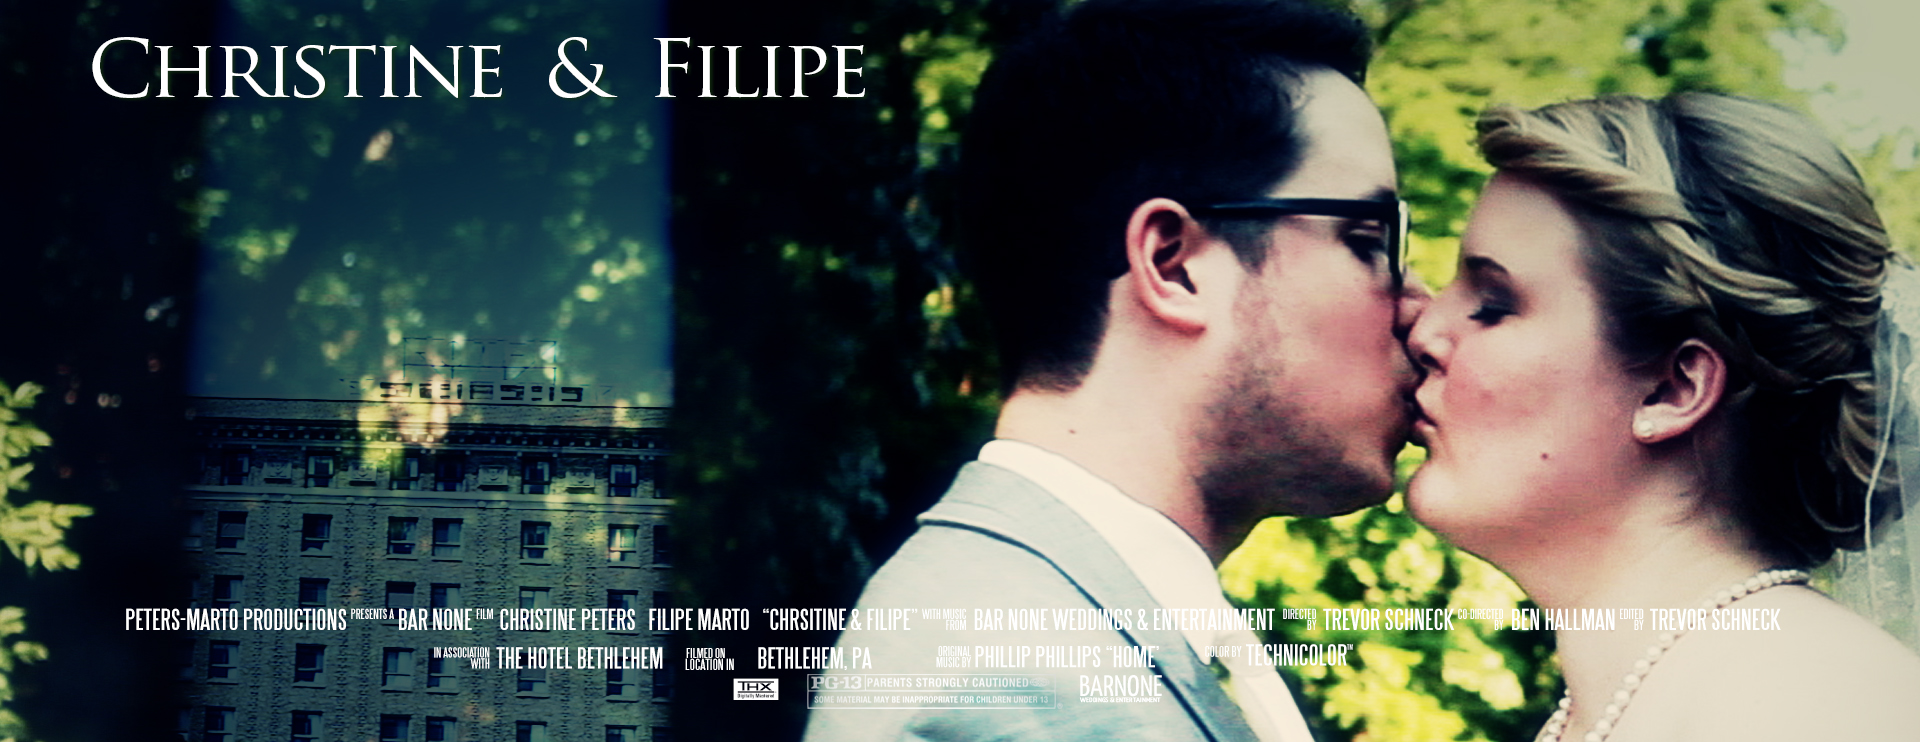 Thumbnail Movie Poster - Christine and Filipe